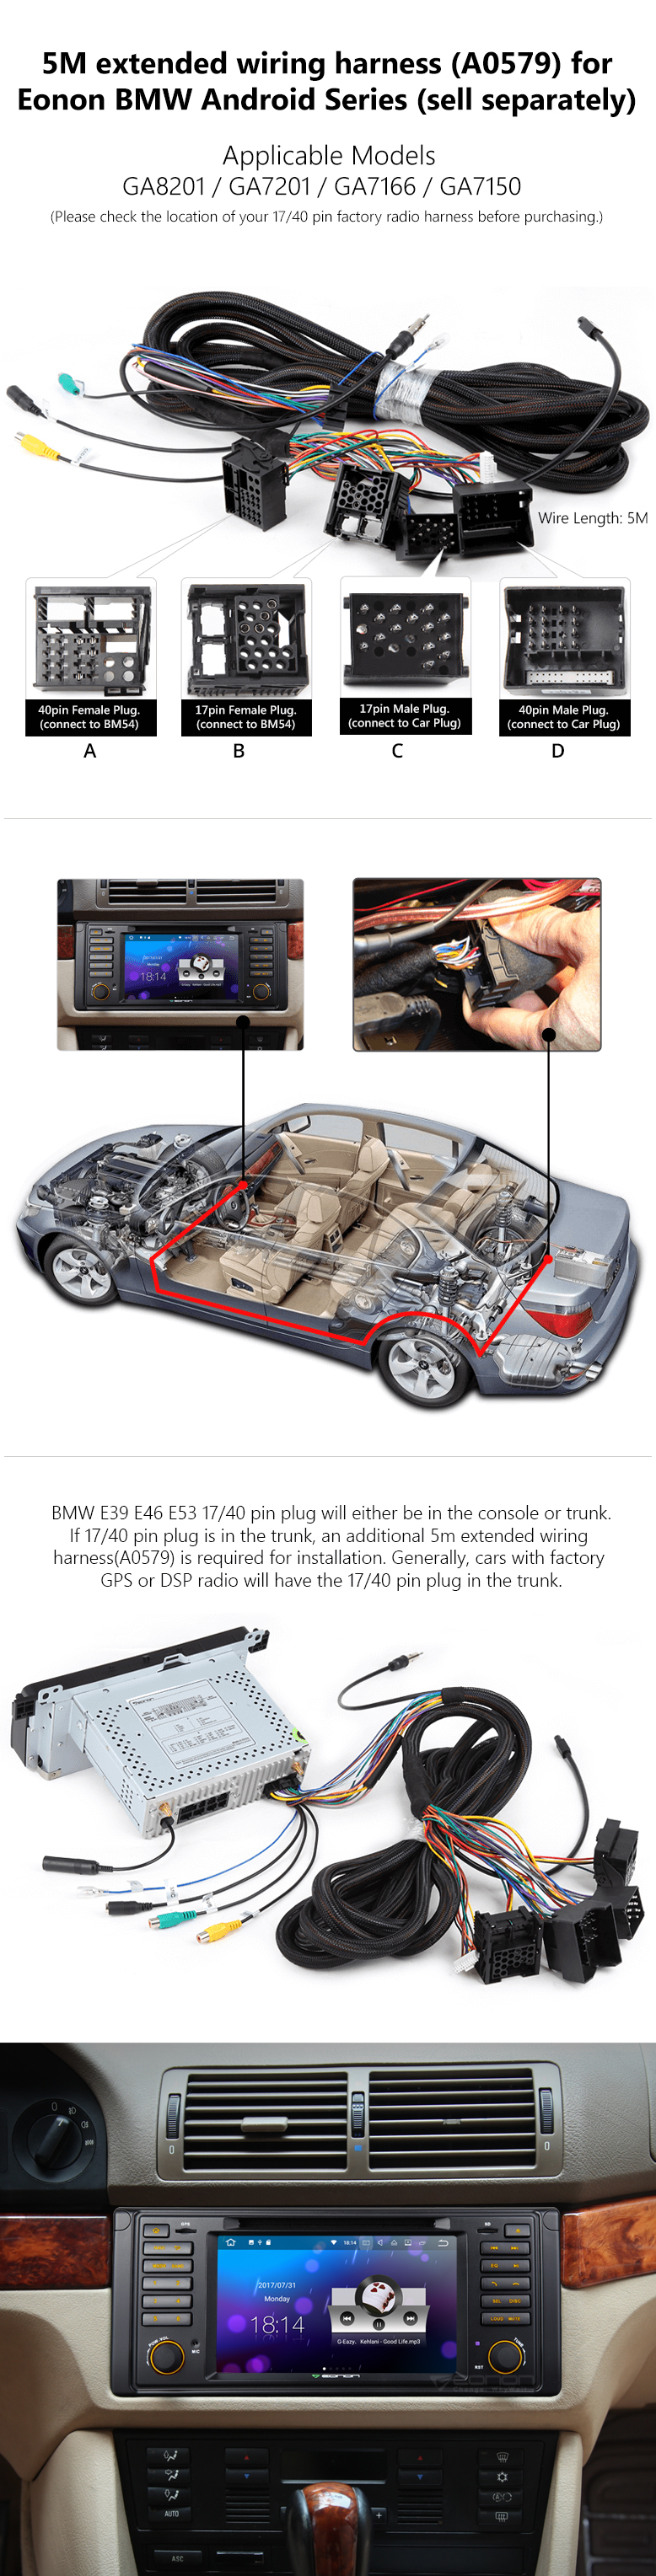 GA8201 06 android vehicle specific gps ga8201 Wiring Harness Diagram at aneh.co